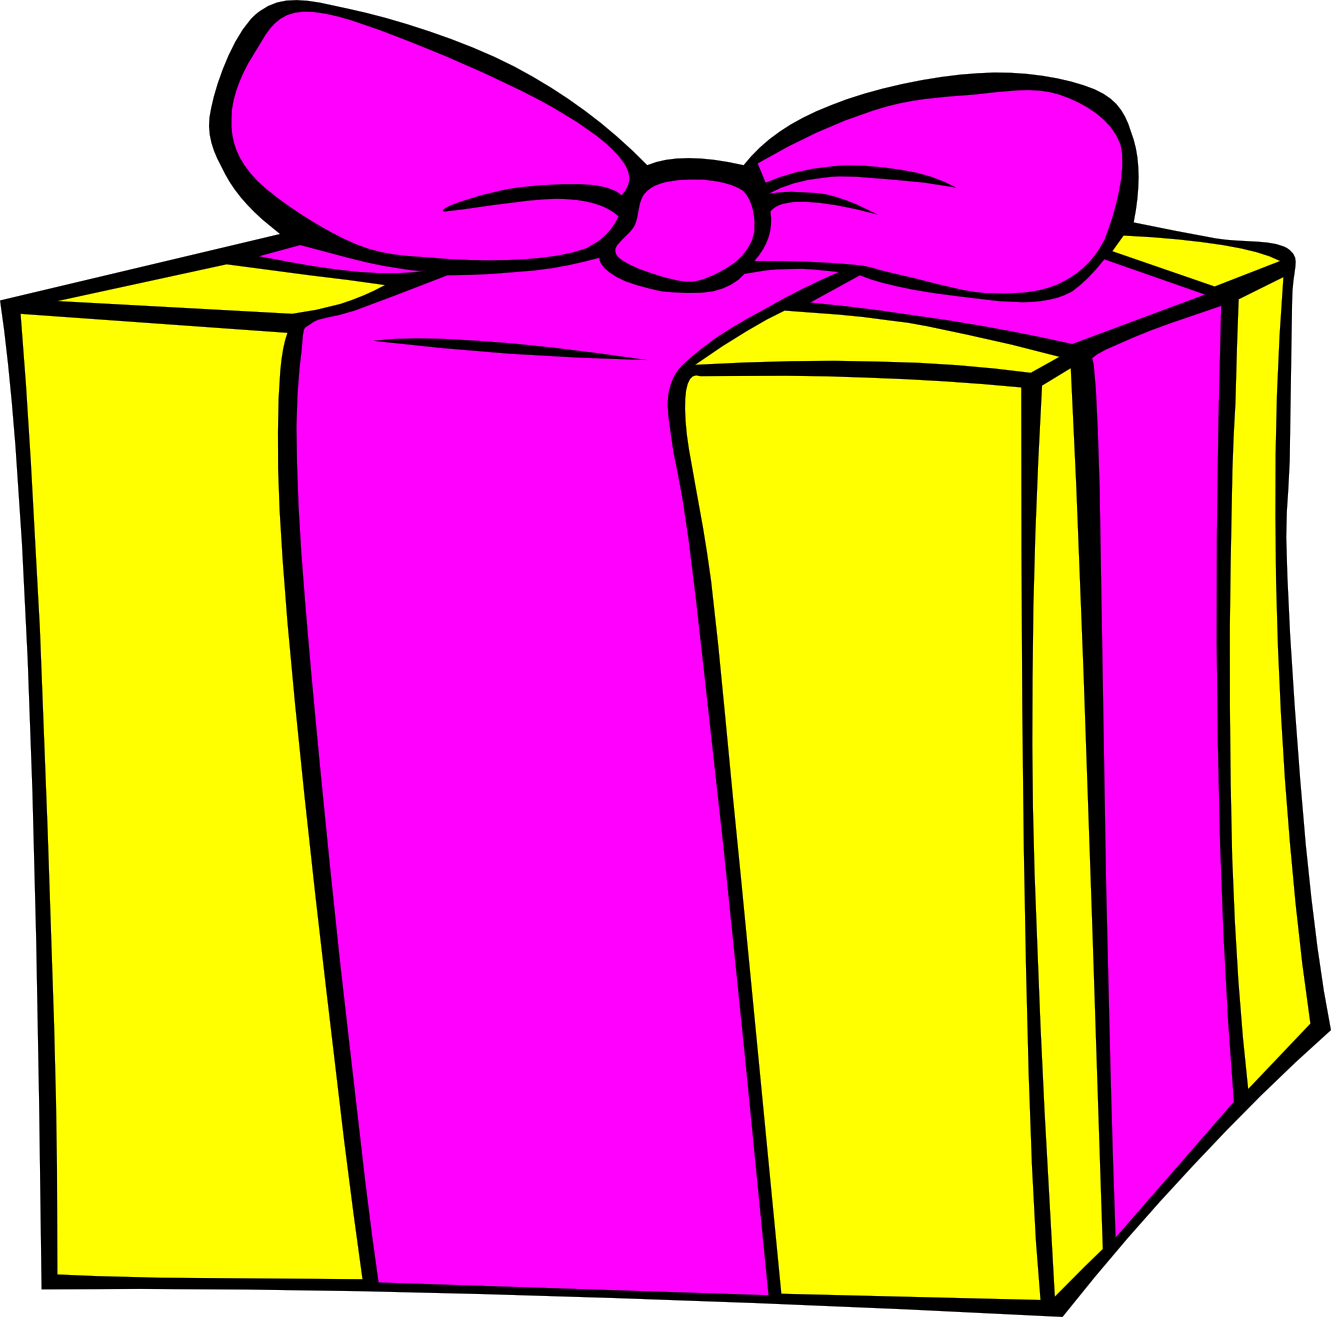 Gifts clipart birthday present. Free gift images download